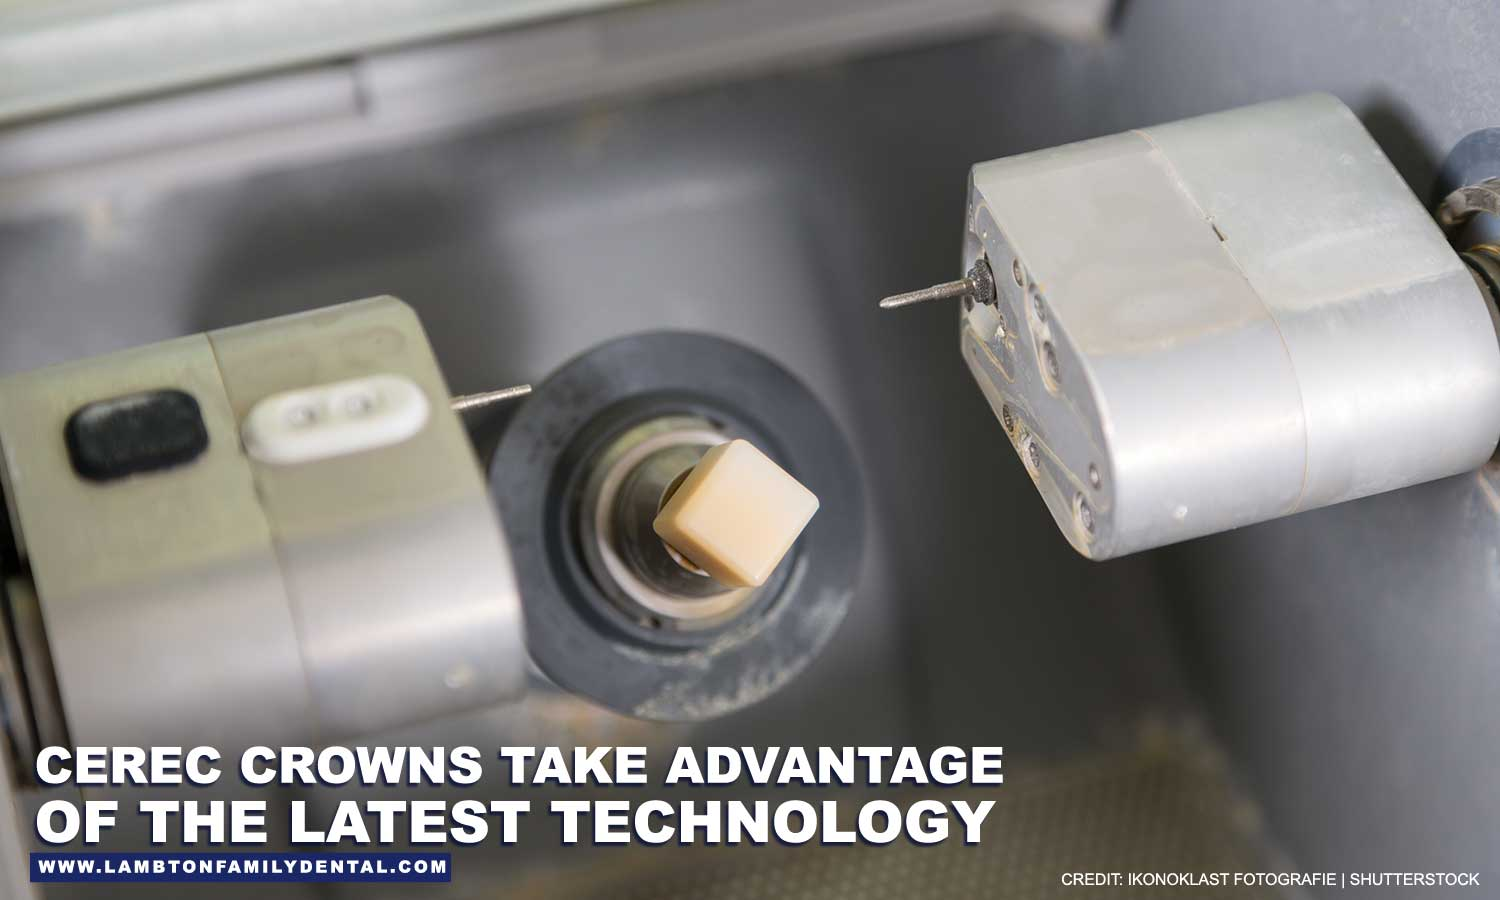 CEREC-crowns-take-advantage-of-the-latest-technology